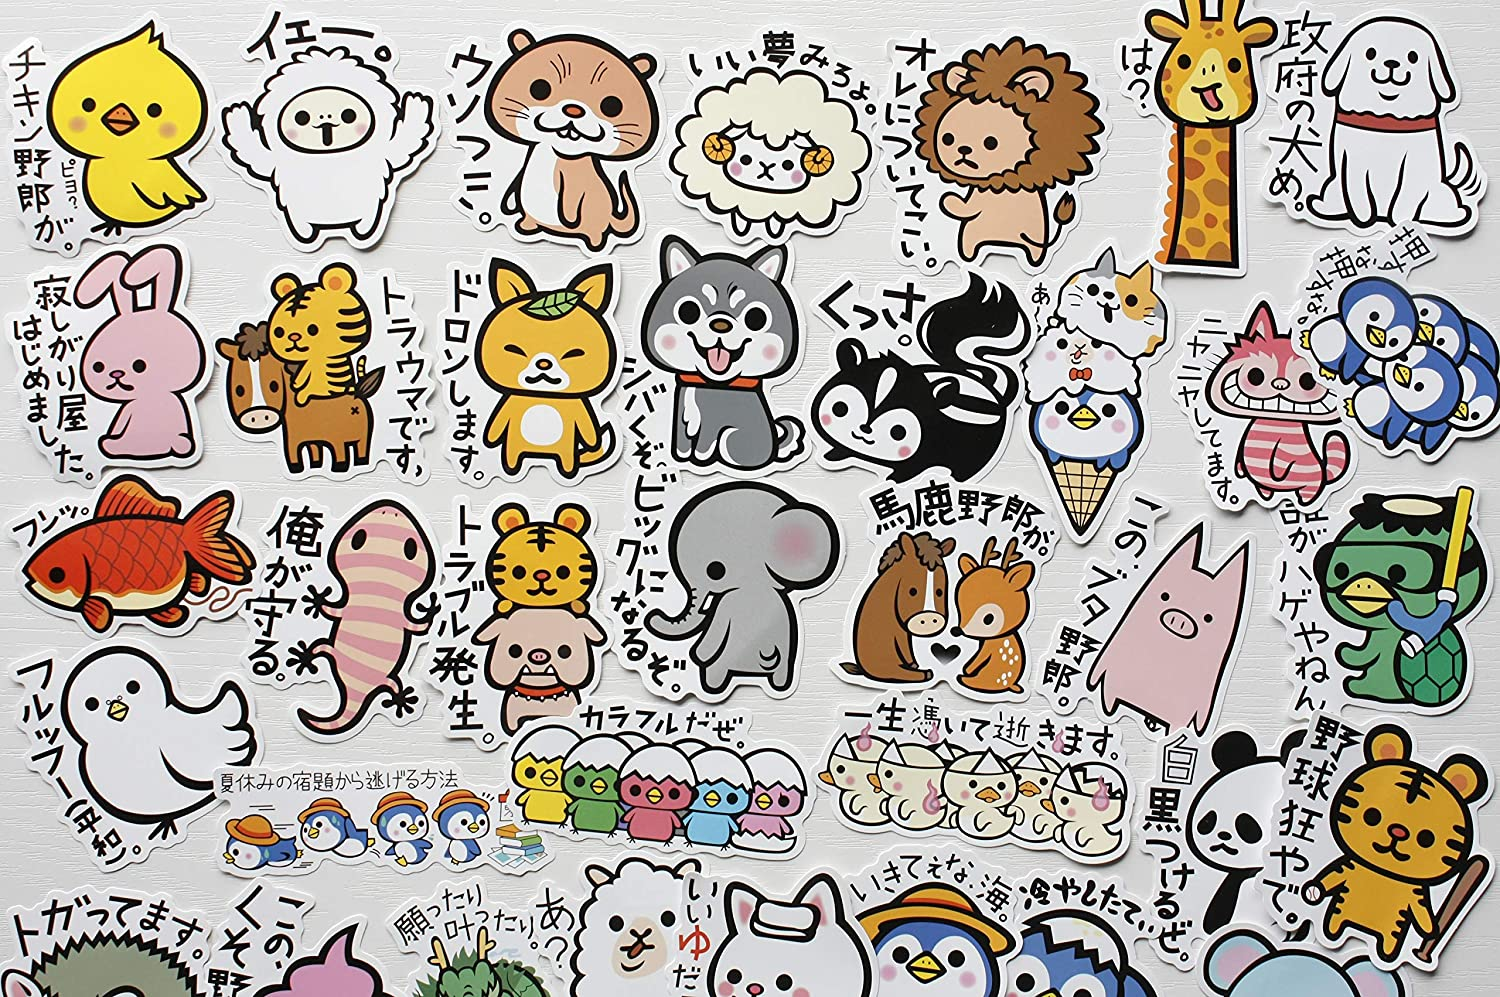 Bags Computer OAbear Kero Kero Keroppi Stickers 100pcs Waterproof Cute Cartoon Fashion Stickers for Boys Girls Suitable for The Decoration of Mobile Phones